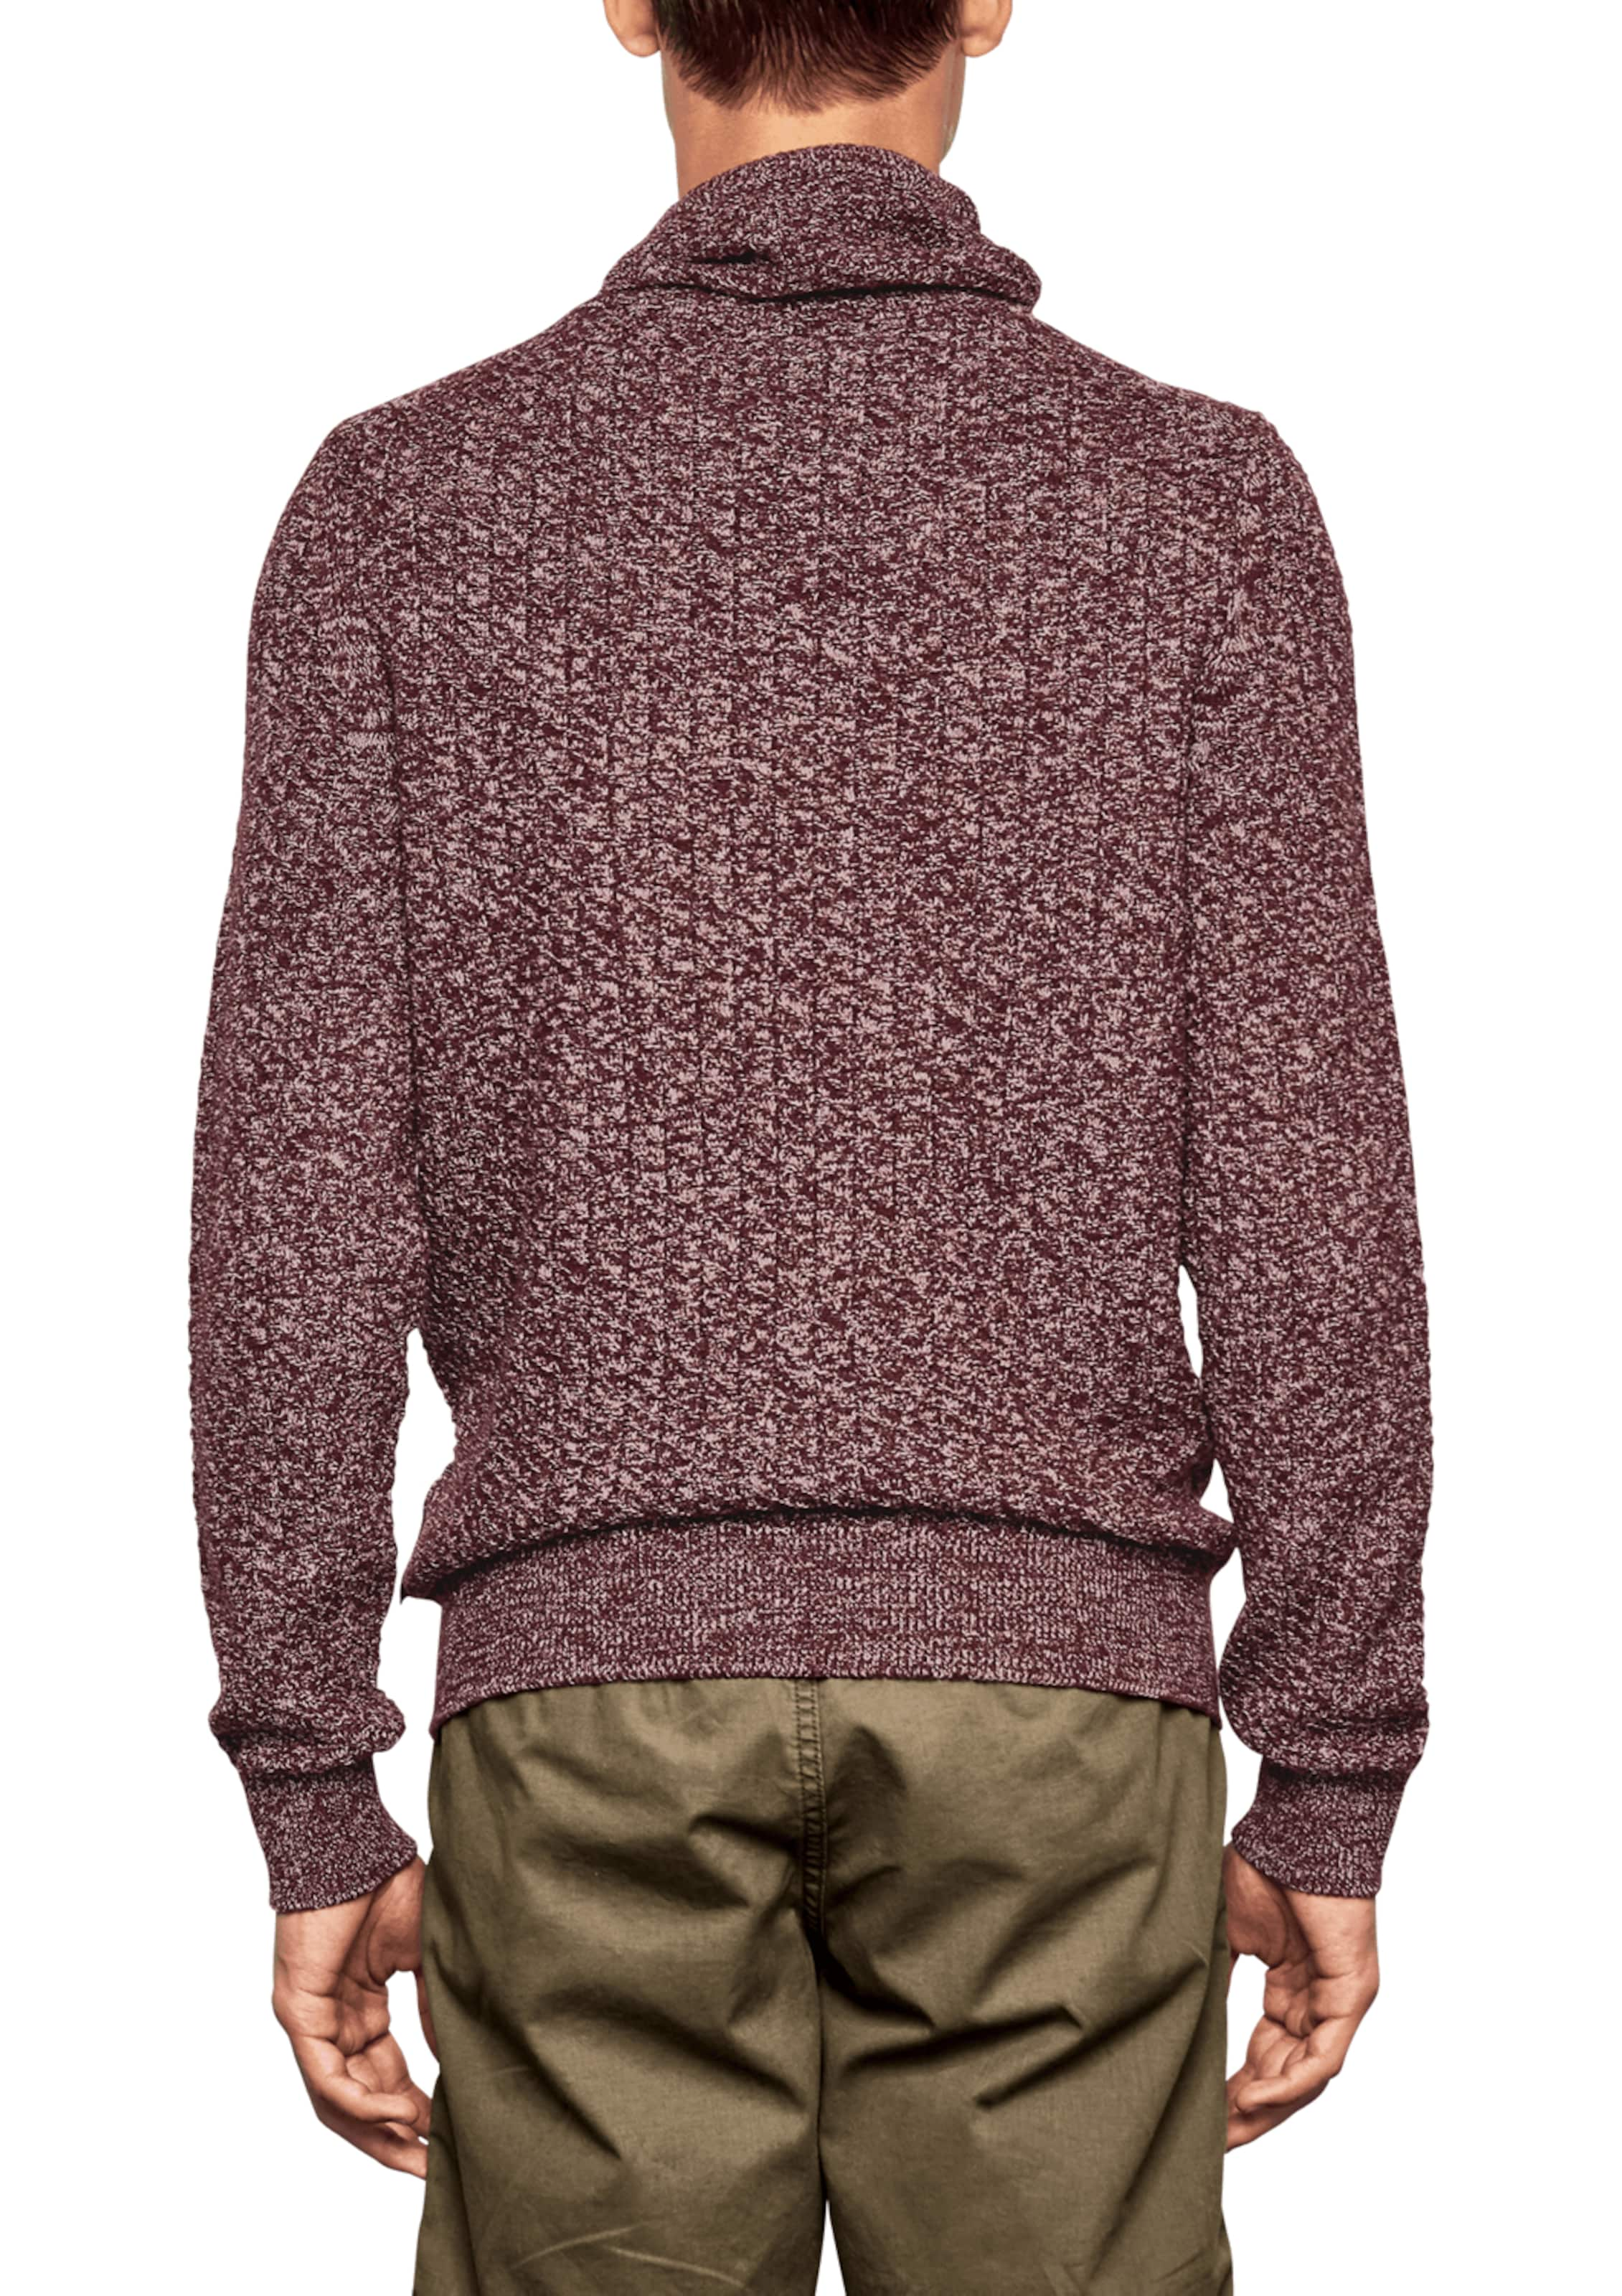 By Q Weinrot Pullover In s Designed jqSLGVpUzM